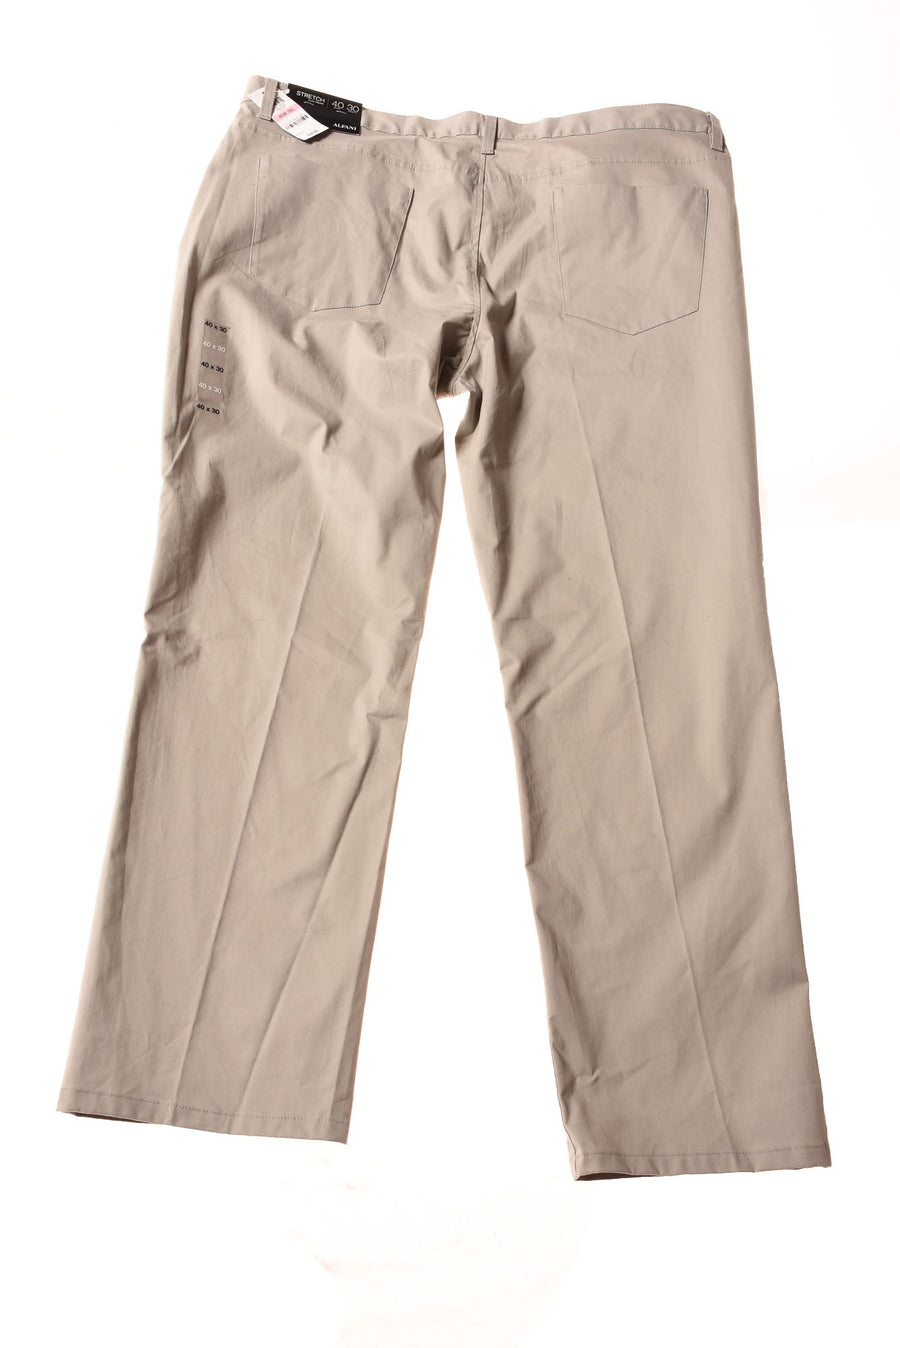 NEW Alfani Men's Pants 40 Silver